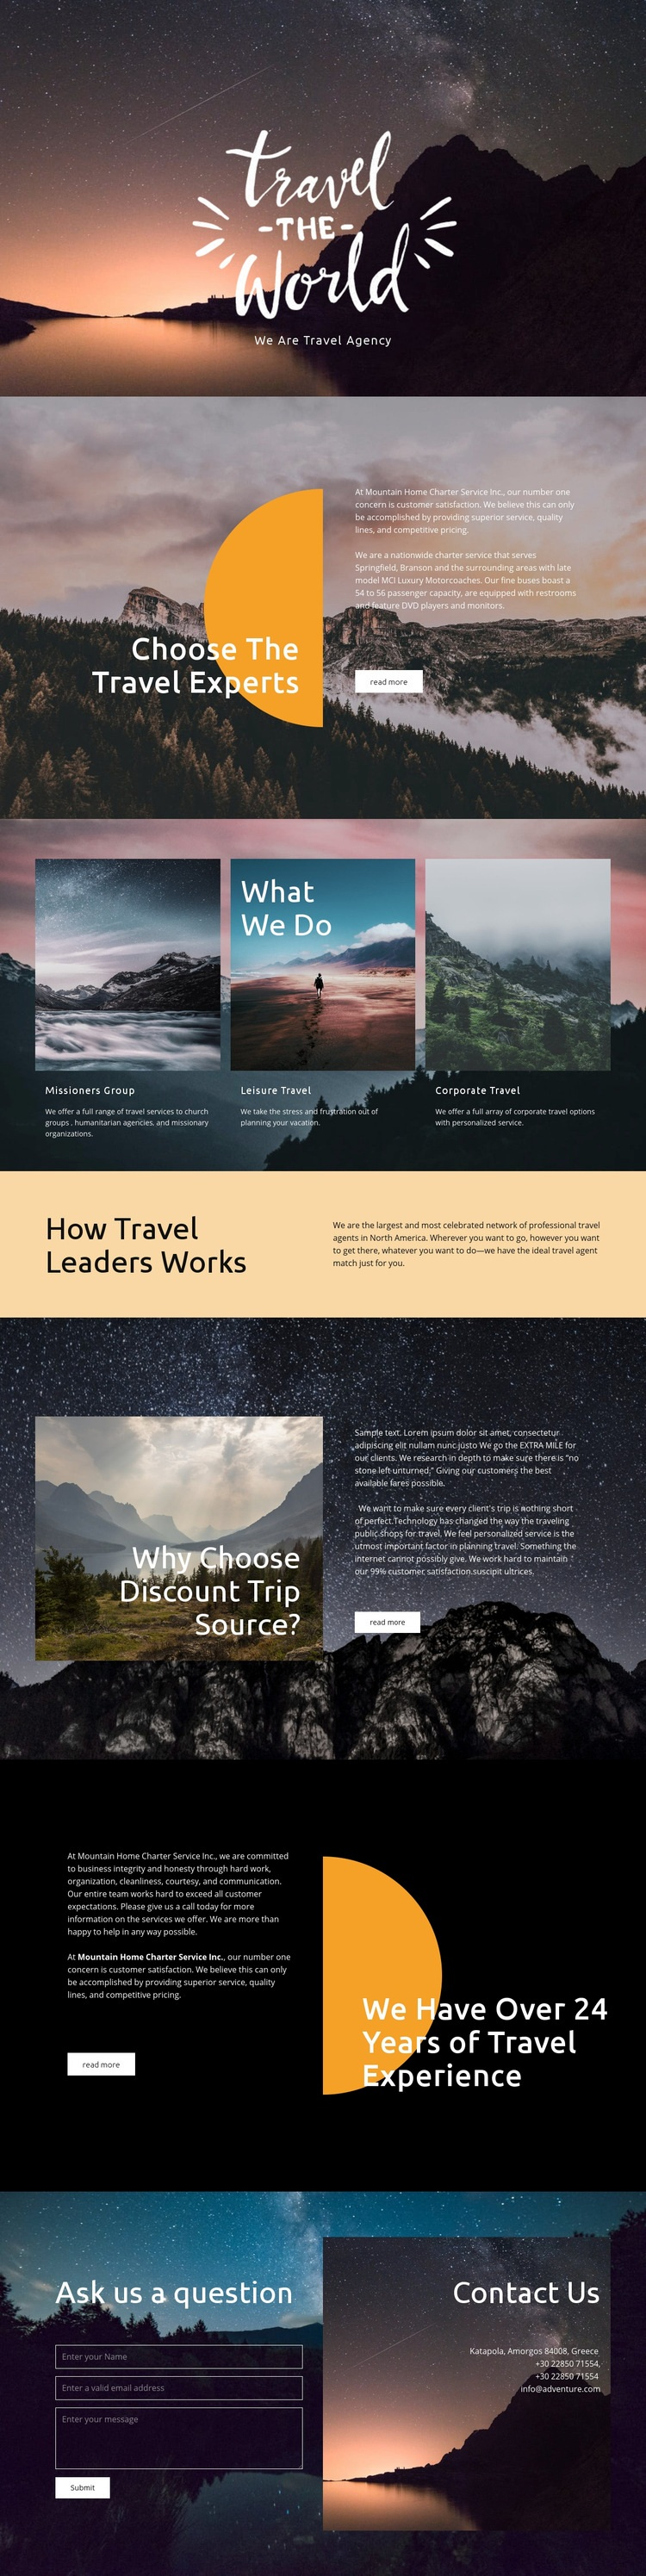 Exploring new places Html Code Example